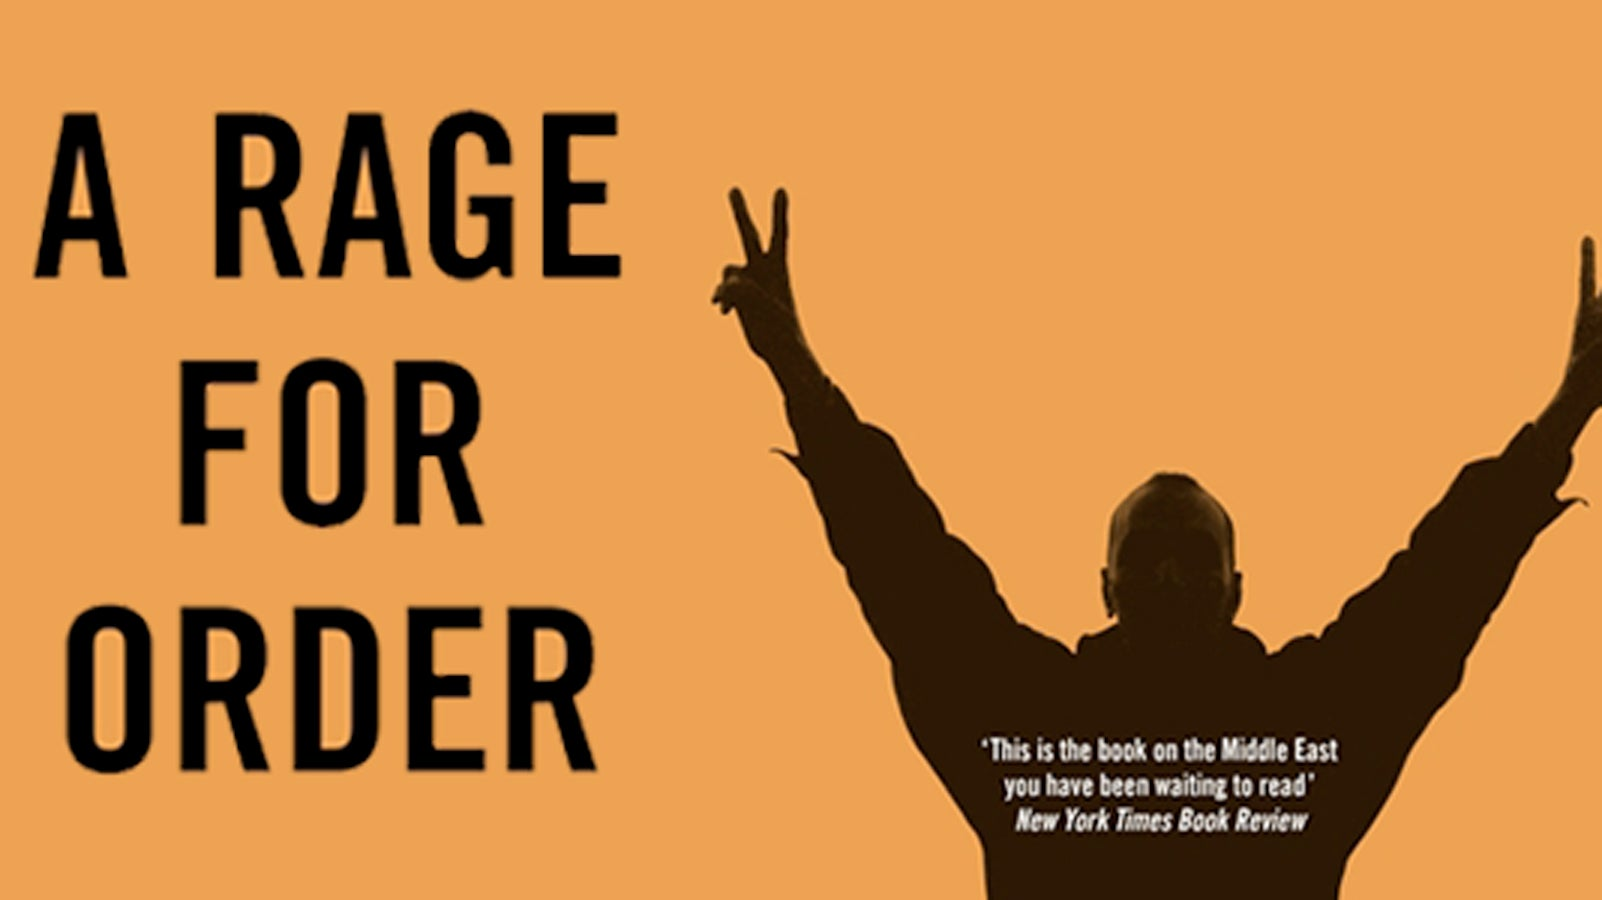 The silhouette of a man holding his hands in the air next to the words 'A RAGE FOR ORDER'